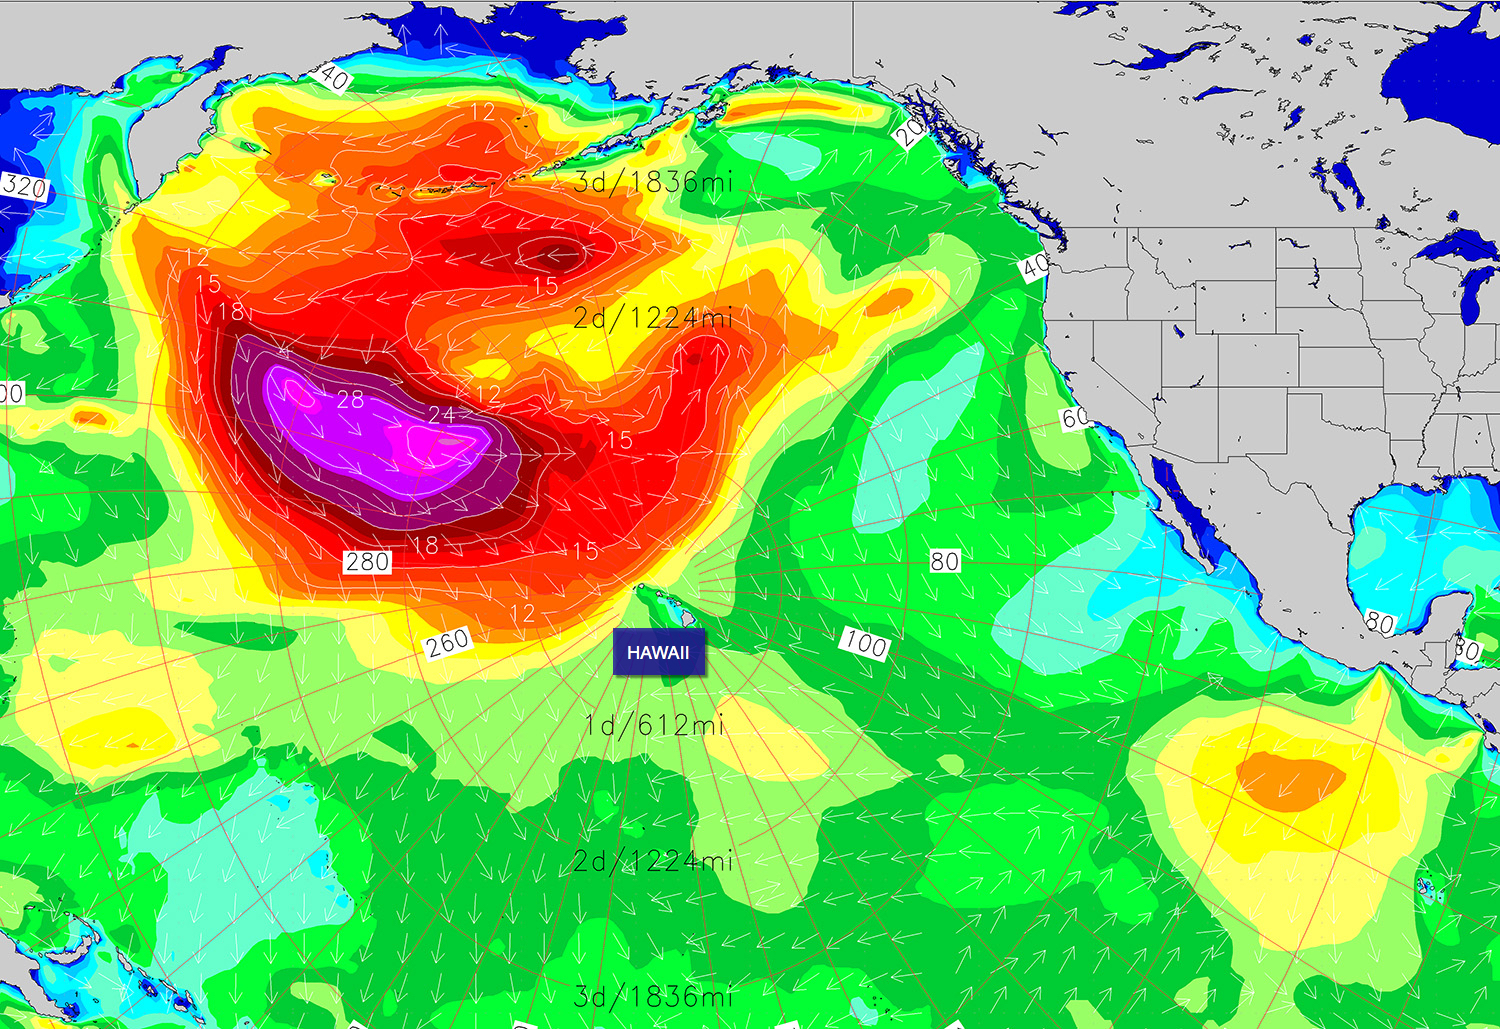 c9c1fab8aa There will be no shortage of swell for Hawaii during the first half of  February